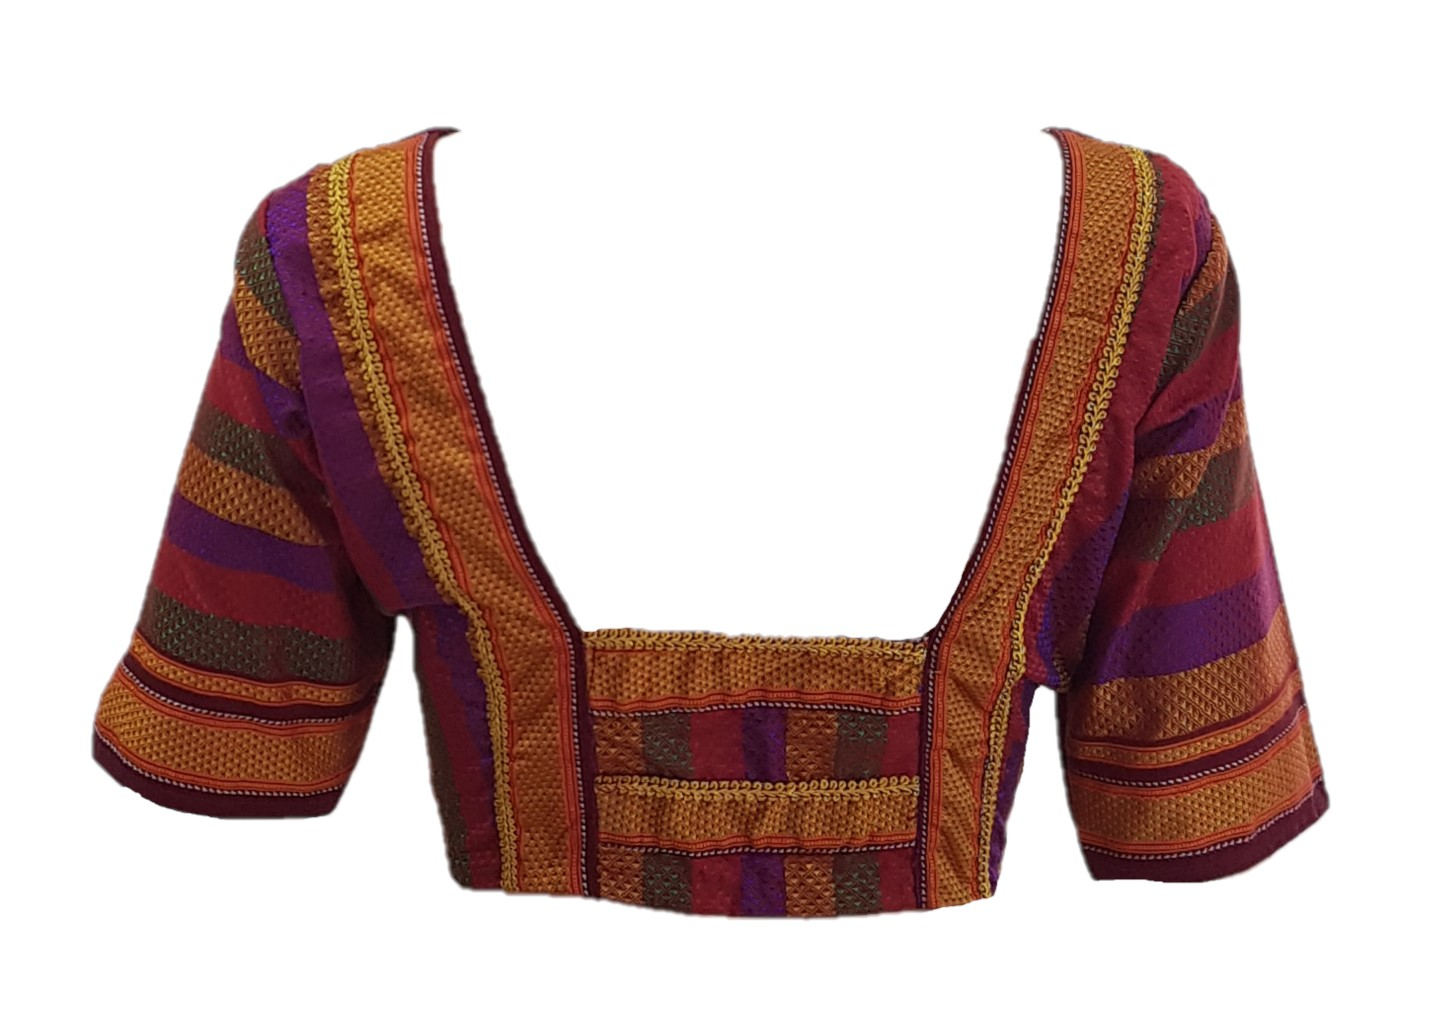 Ilkal Cotton Silk Khun Fabric Designer Back Readymade Saree Blouse Red Multicoloured Size XL : Picture